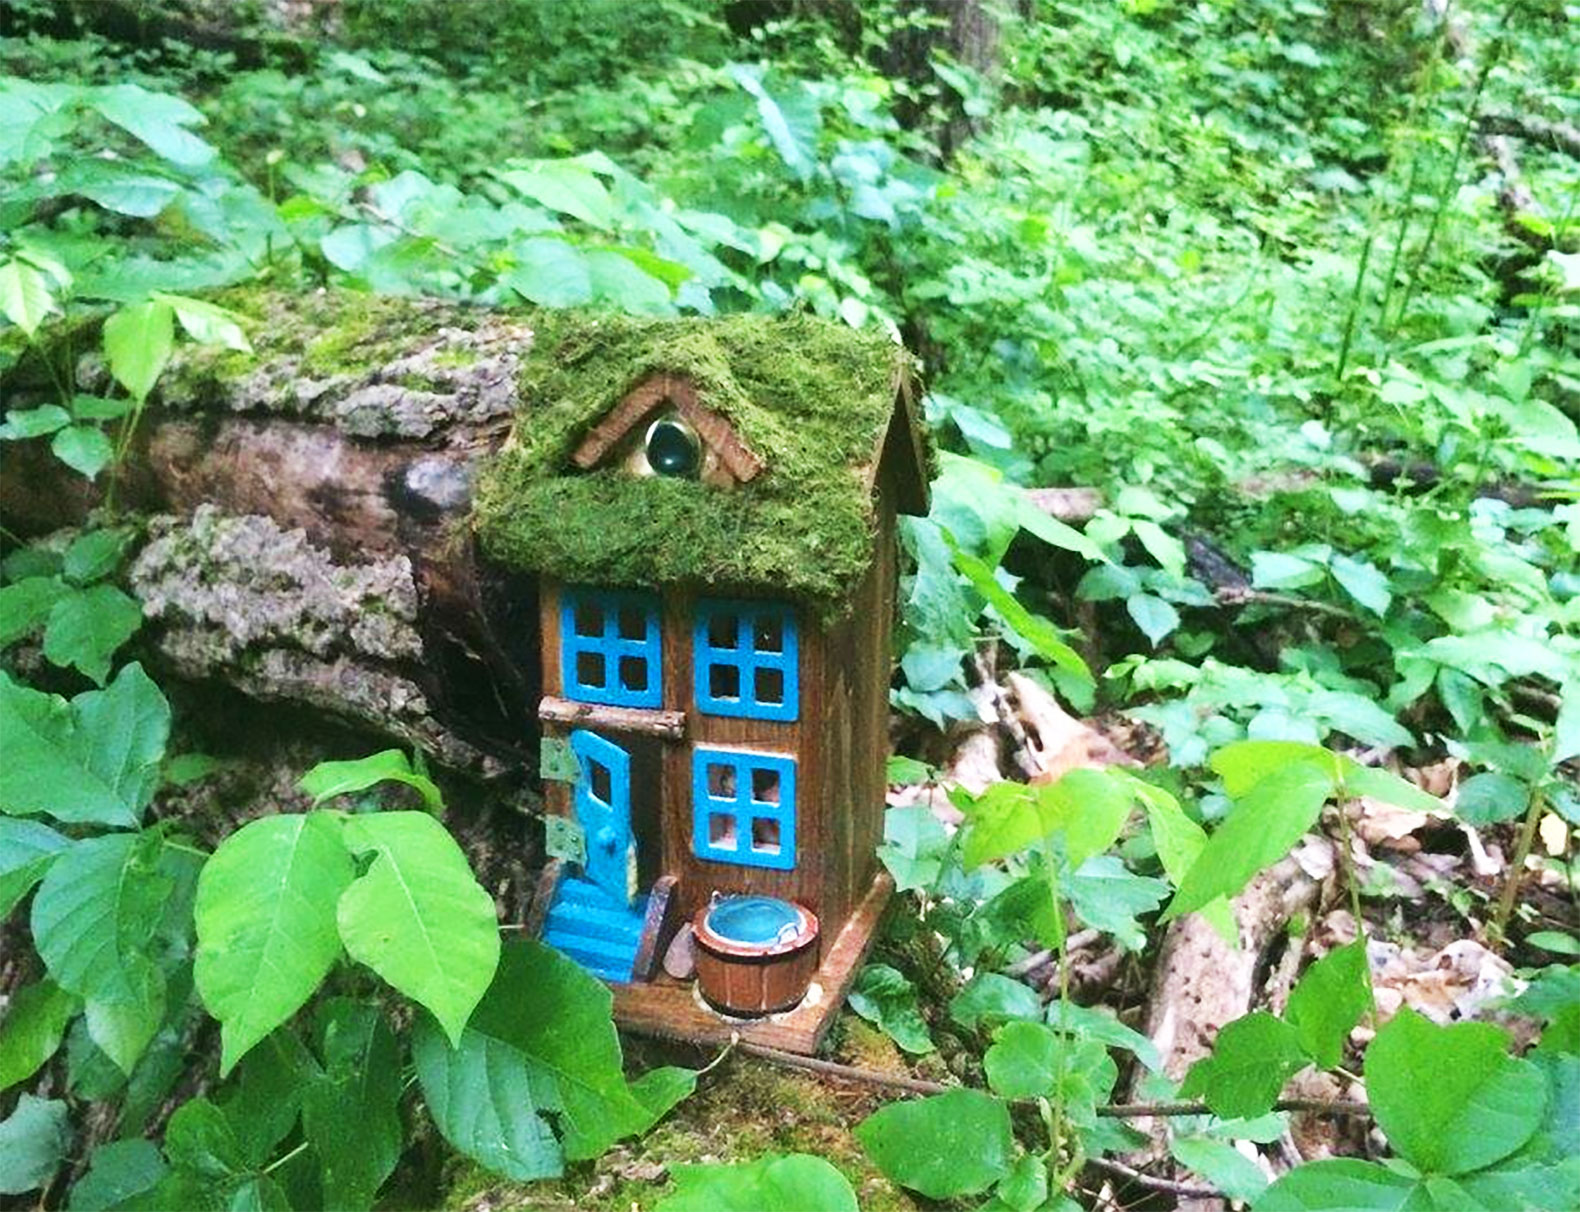 New Jersey Hiking Trail Lined With Mysterious Itsy Bitsy Fairy Houses Inhabitat Green Design